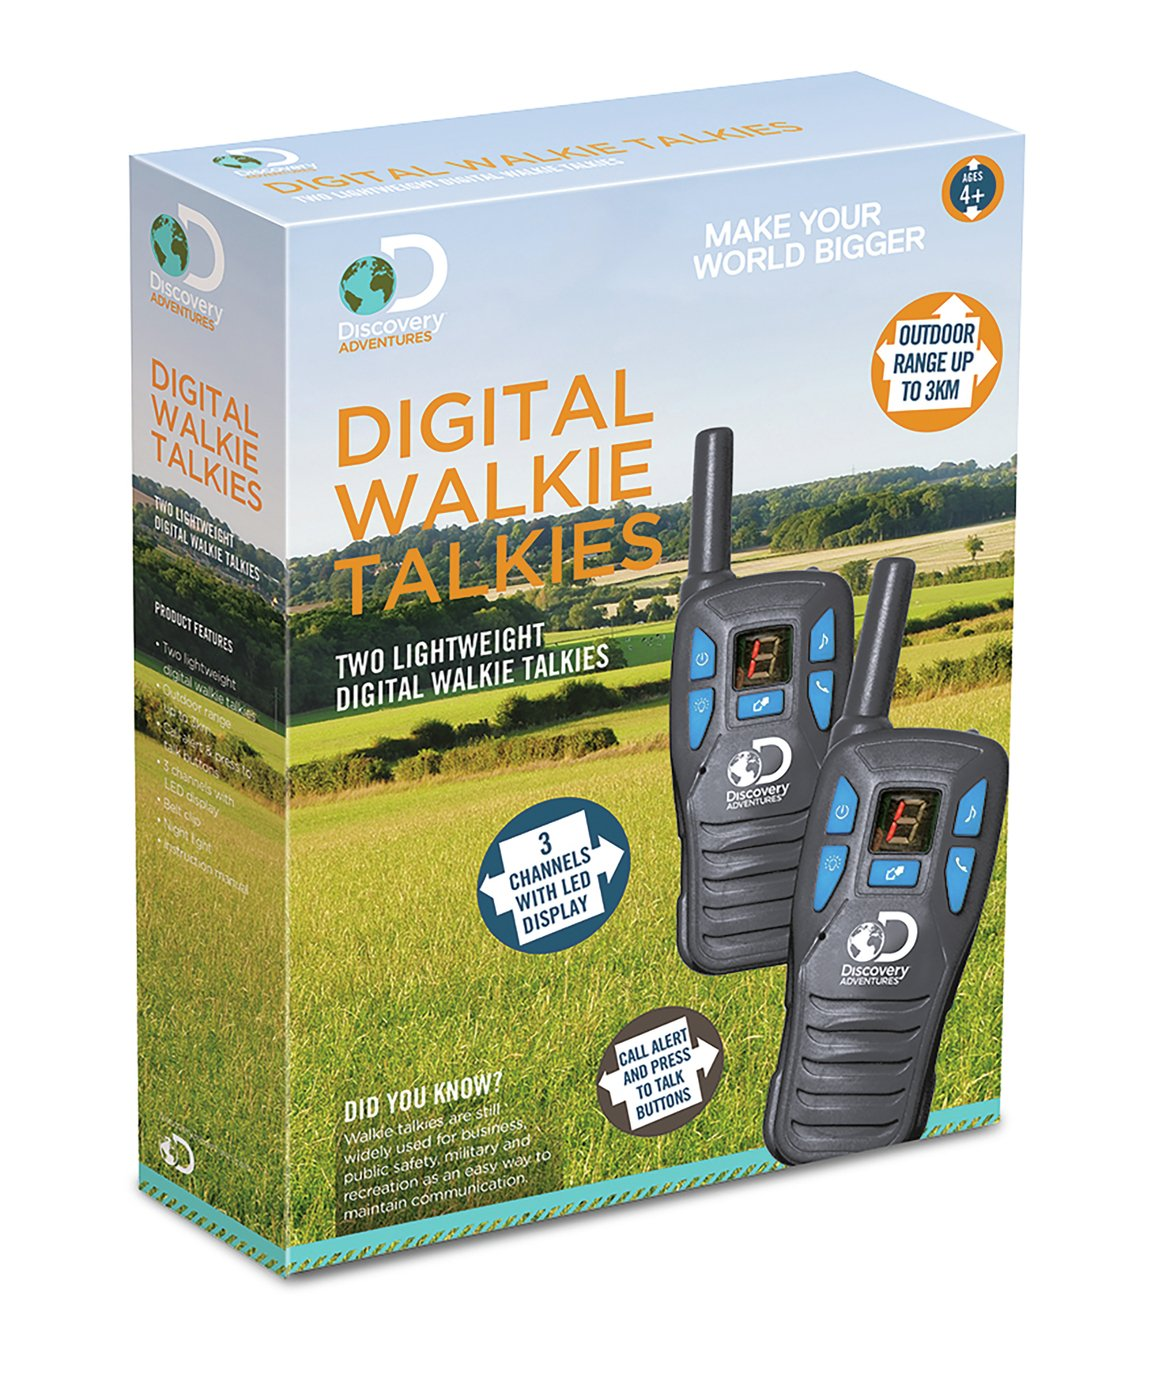 Image of Discovery Channel Walkie Talkies